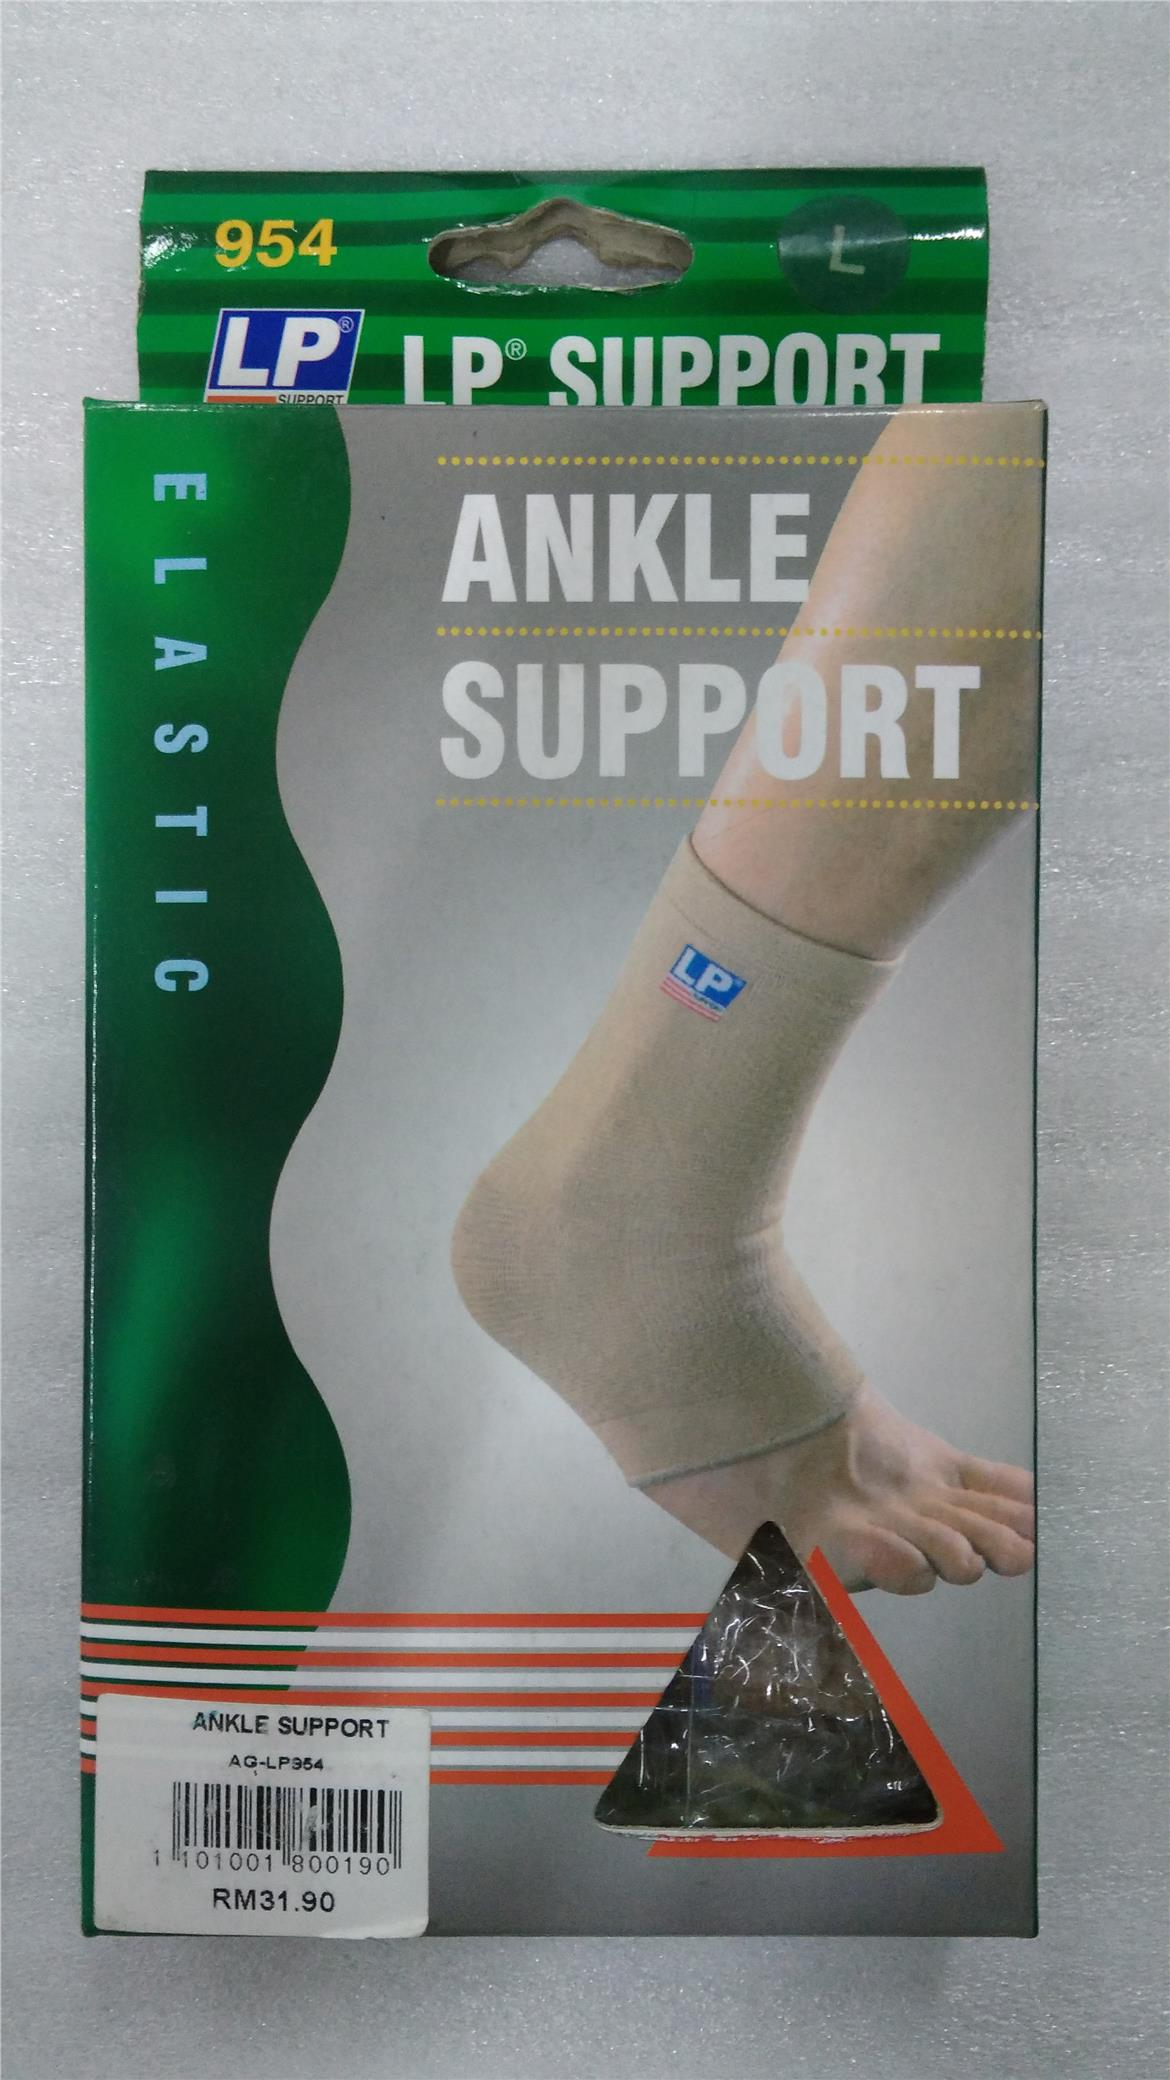 LP Support Ankle Support 954 Size-L Limited Clearance